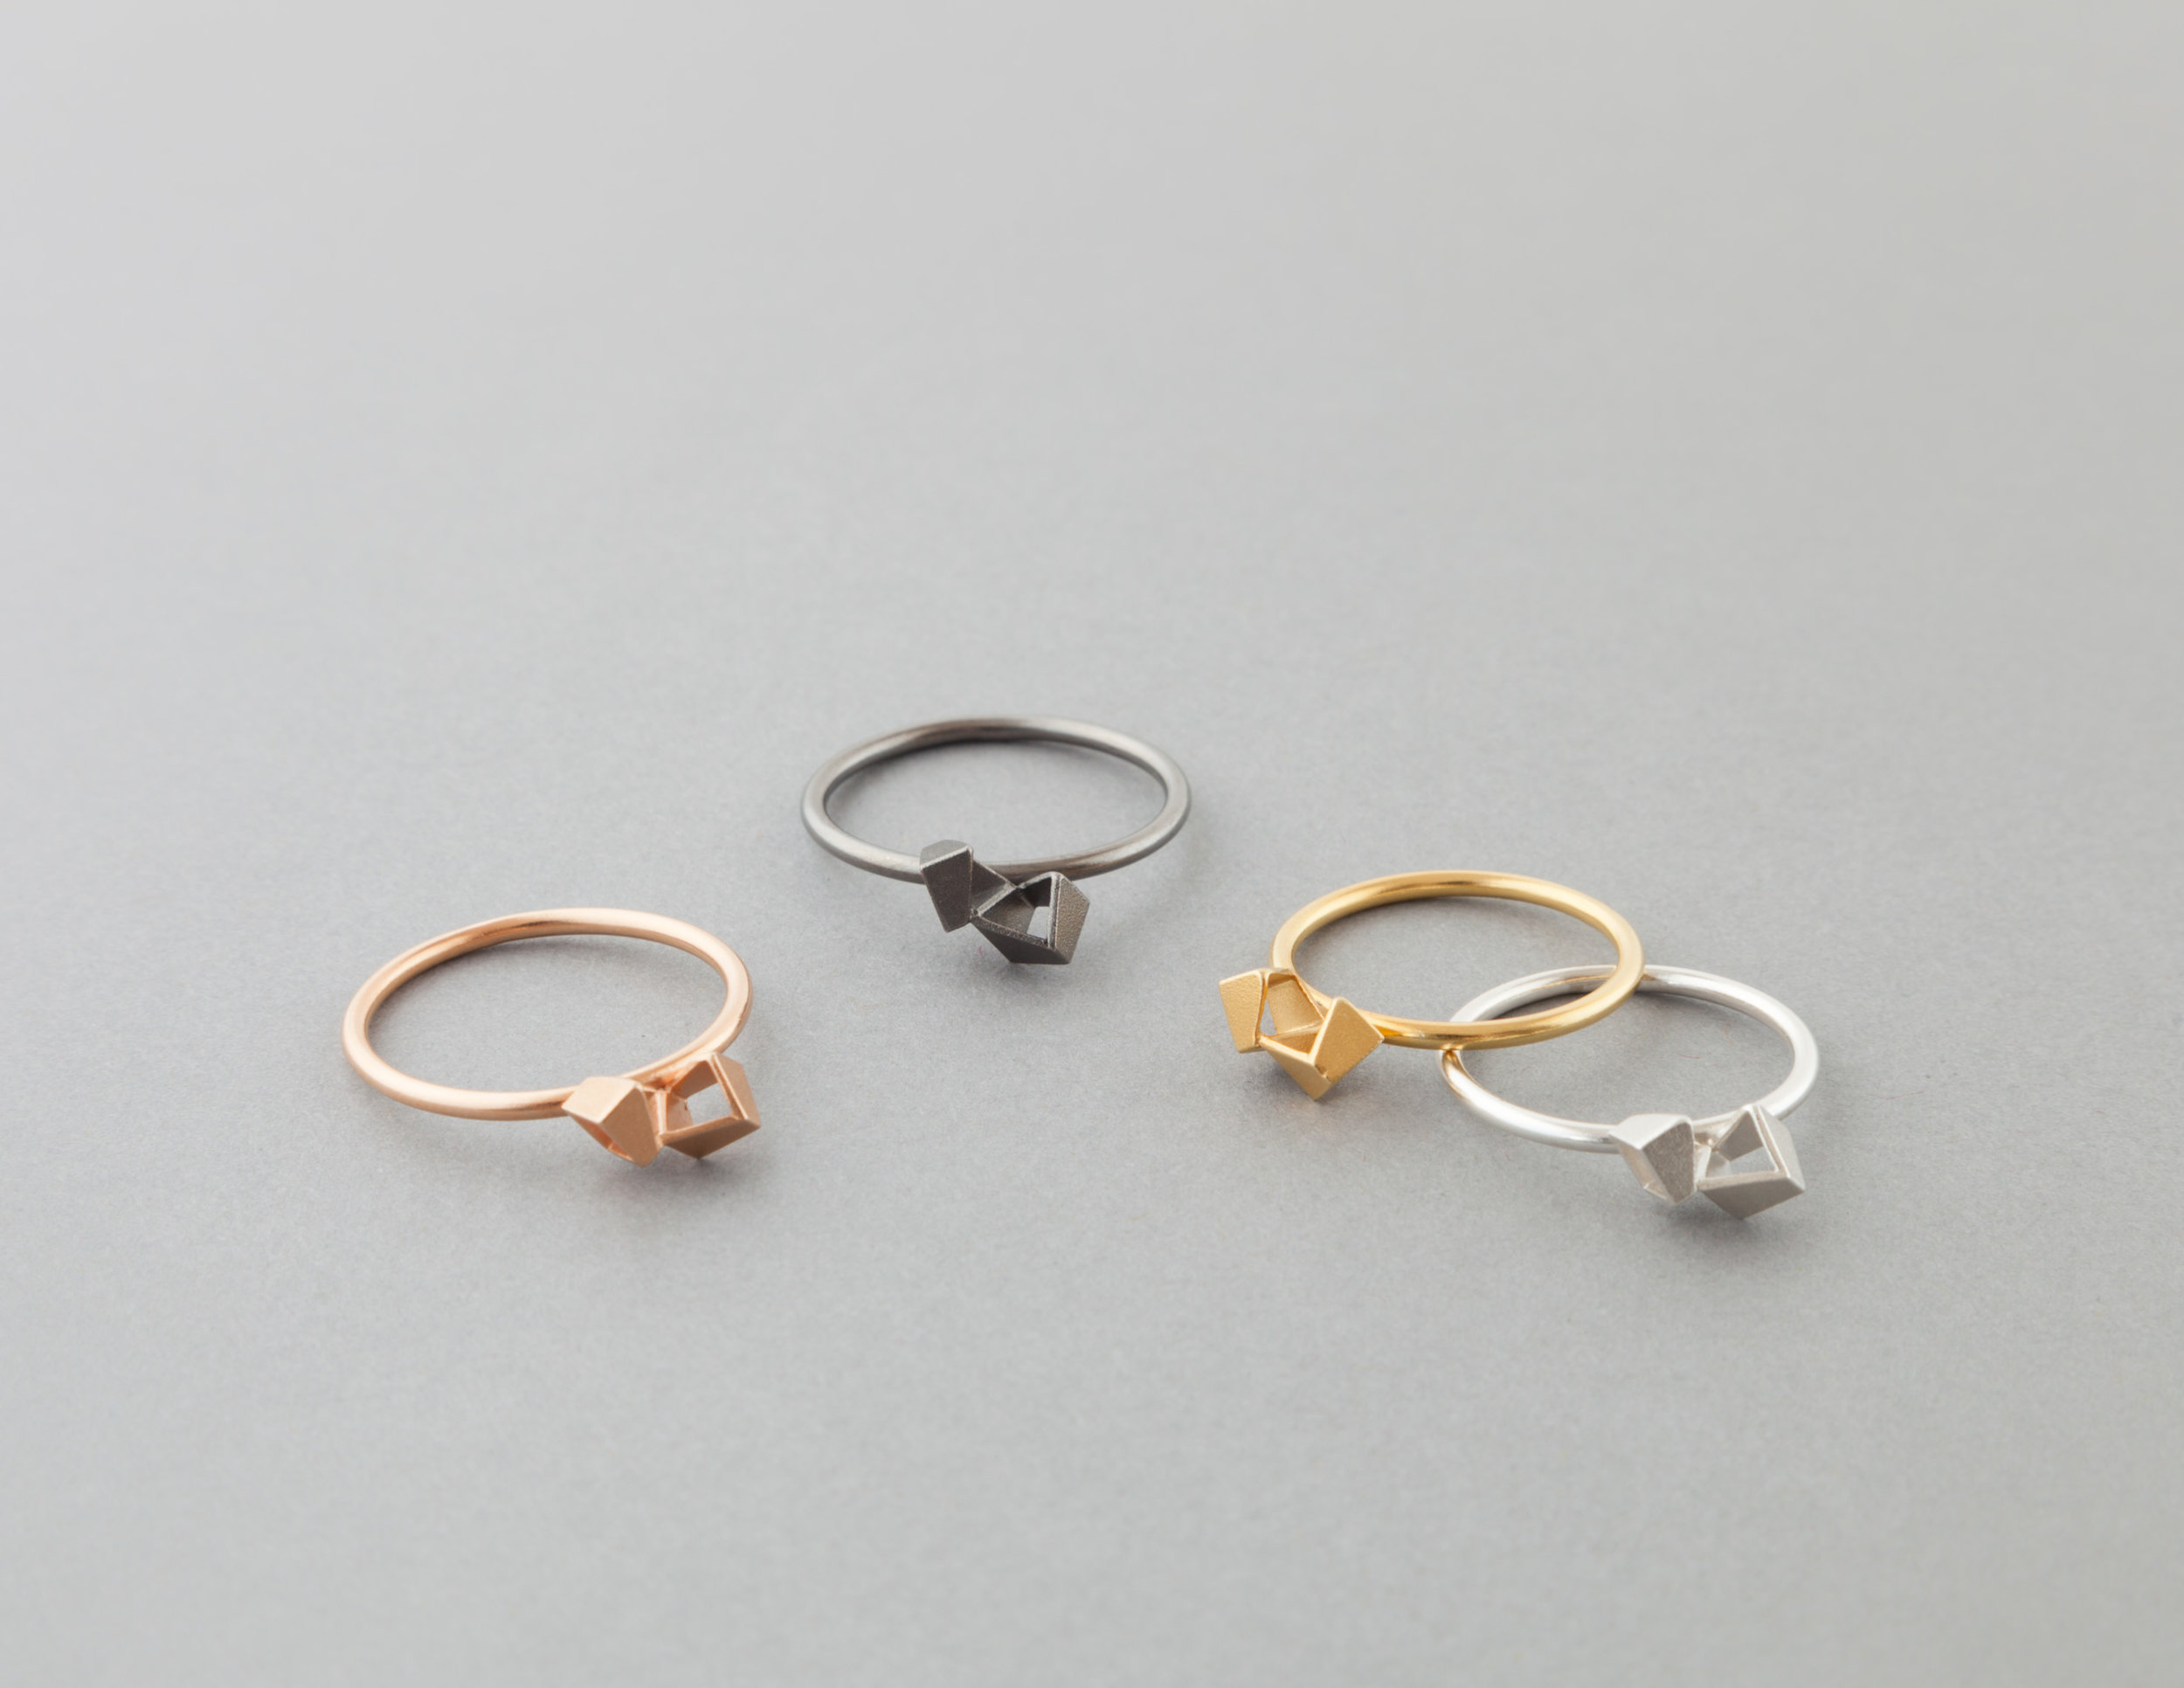 Alma Sophia Design - stacking rings.jpg